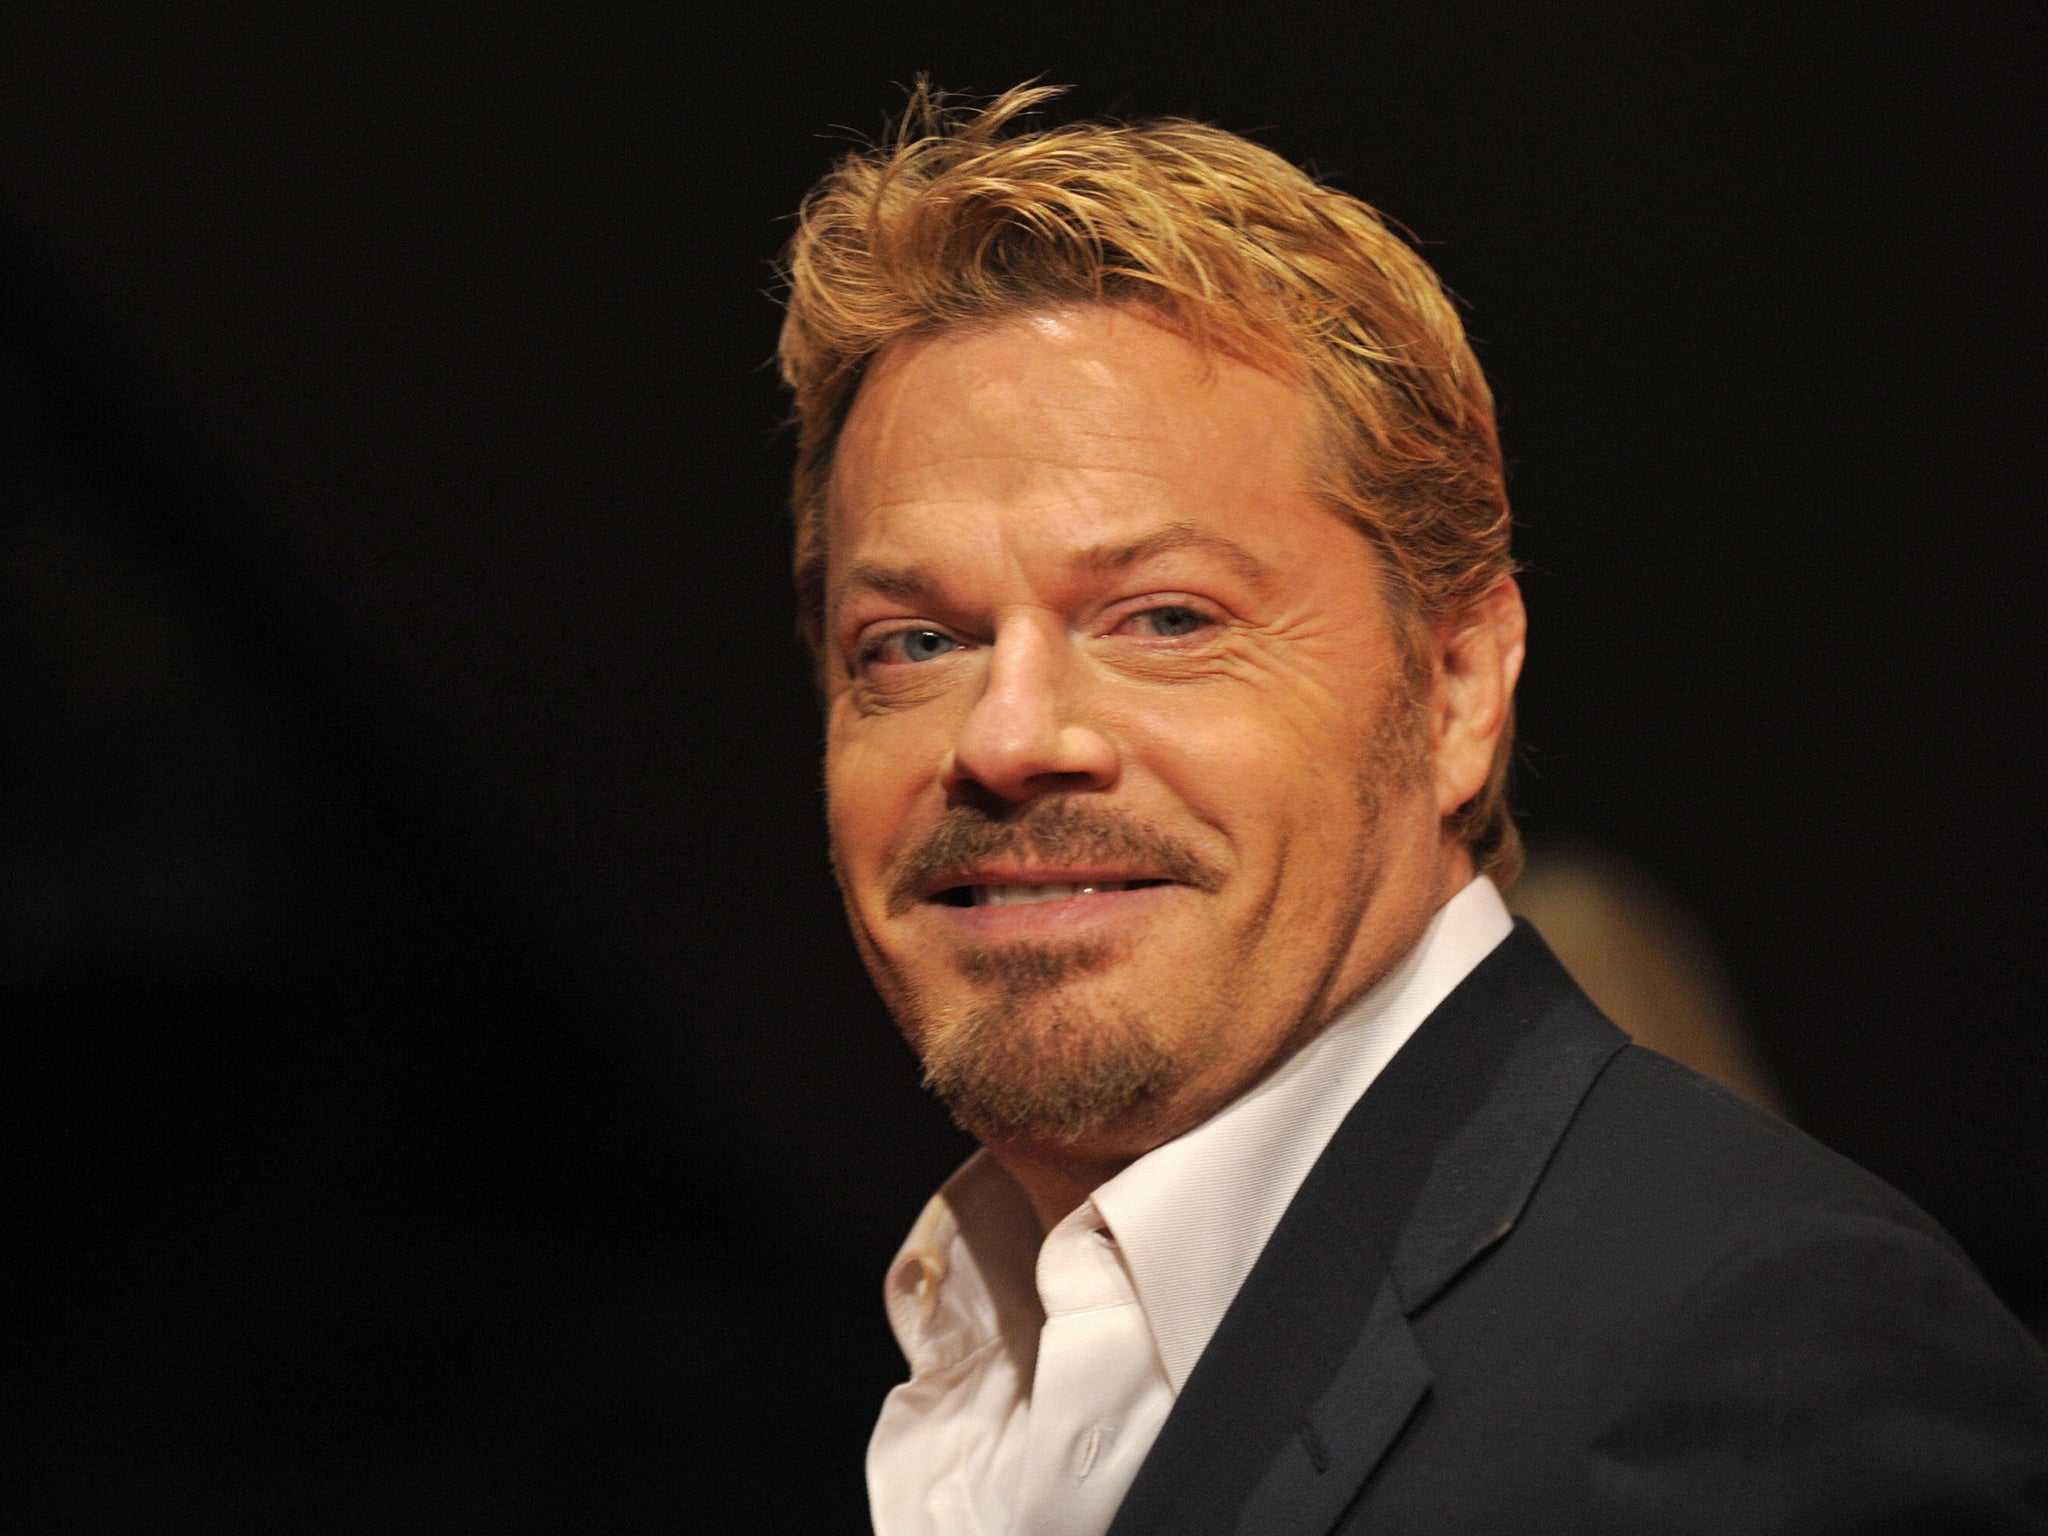 Eddie Izzard interview: I didn't ask Corbyn's opponents to back me